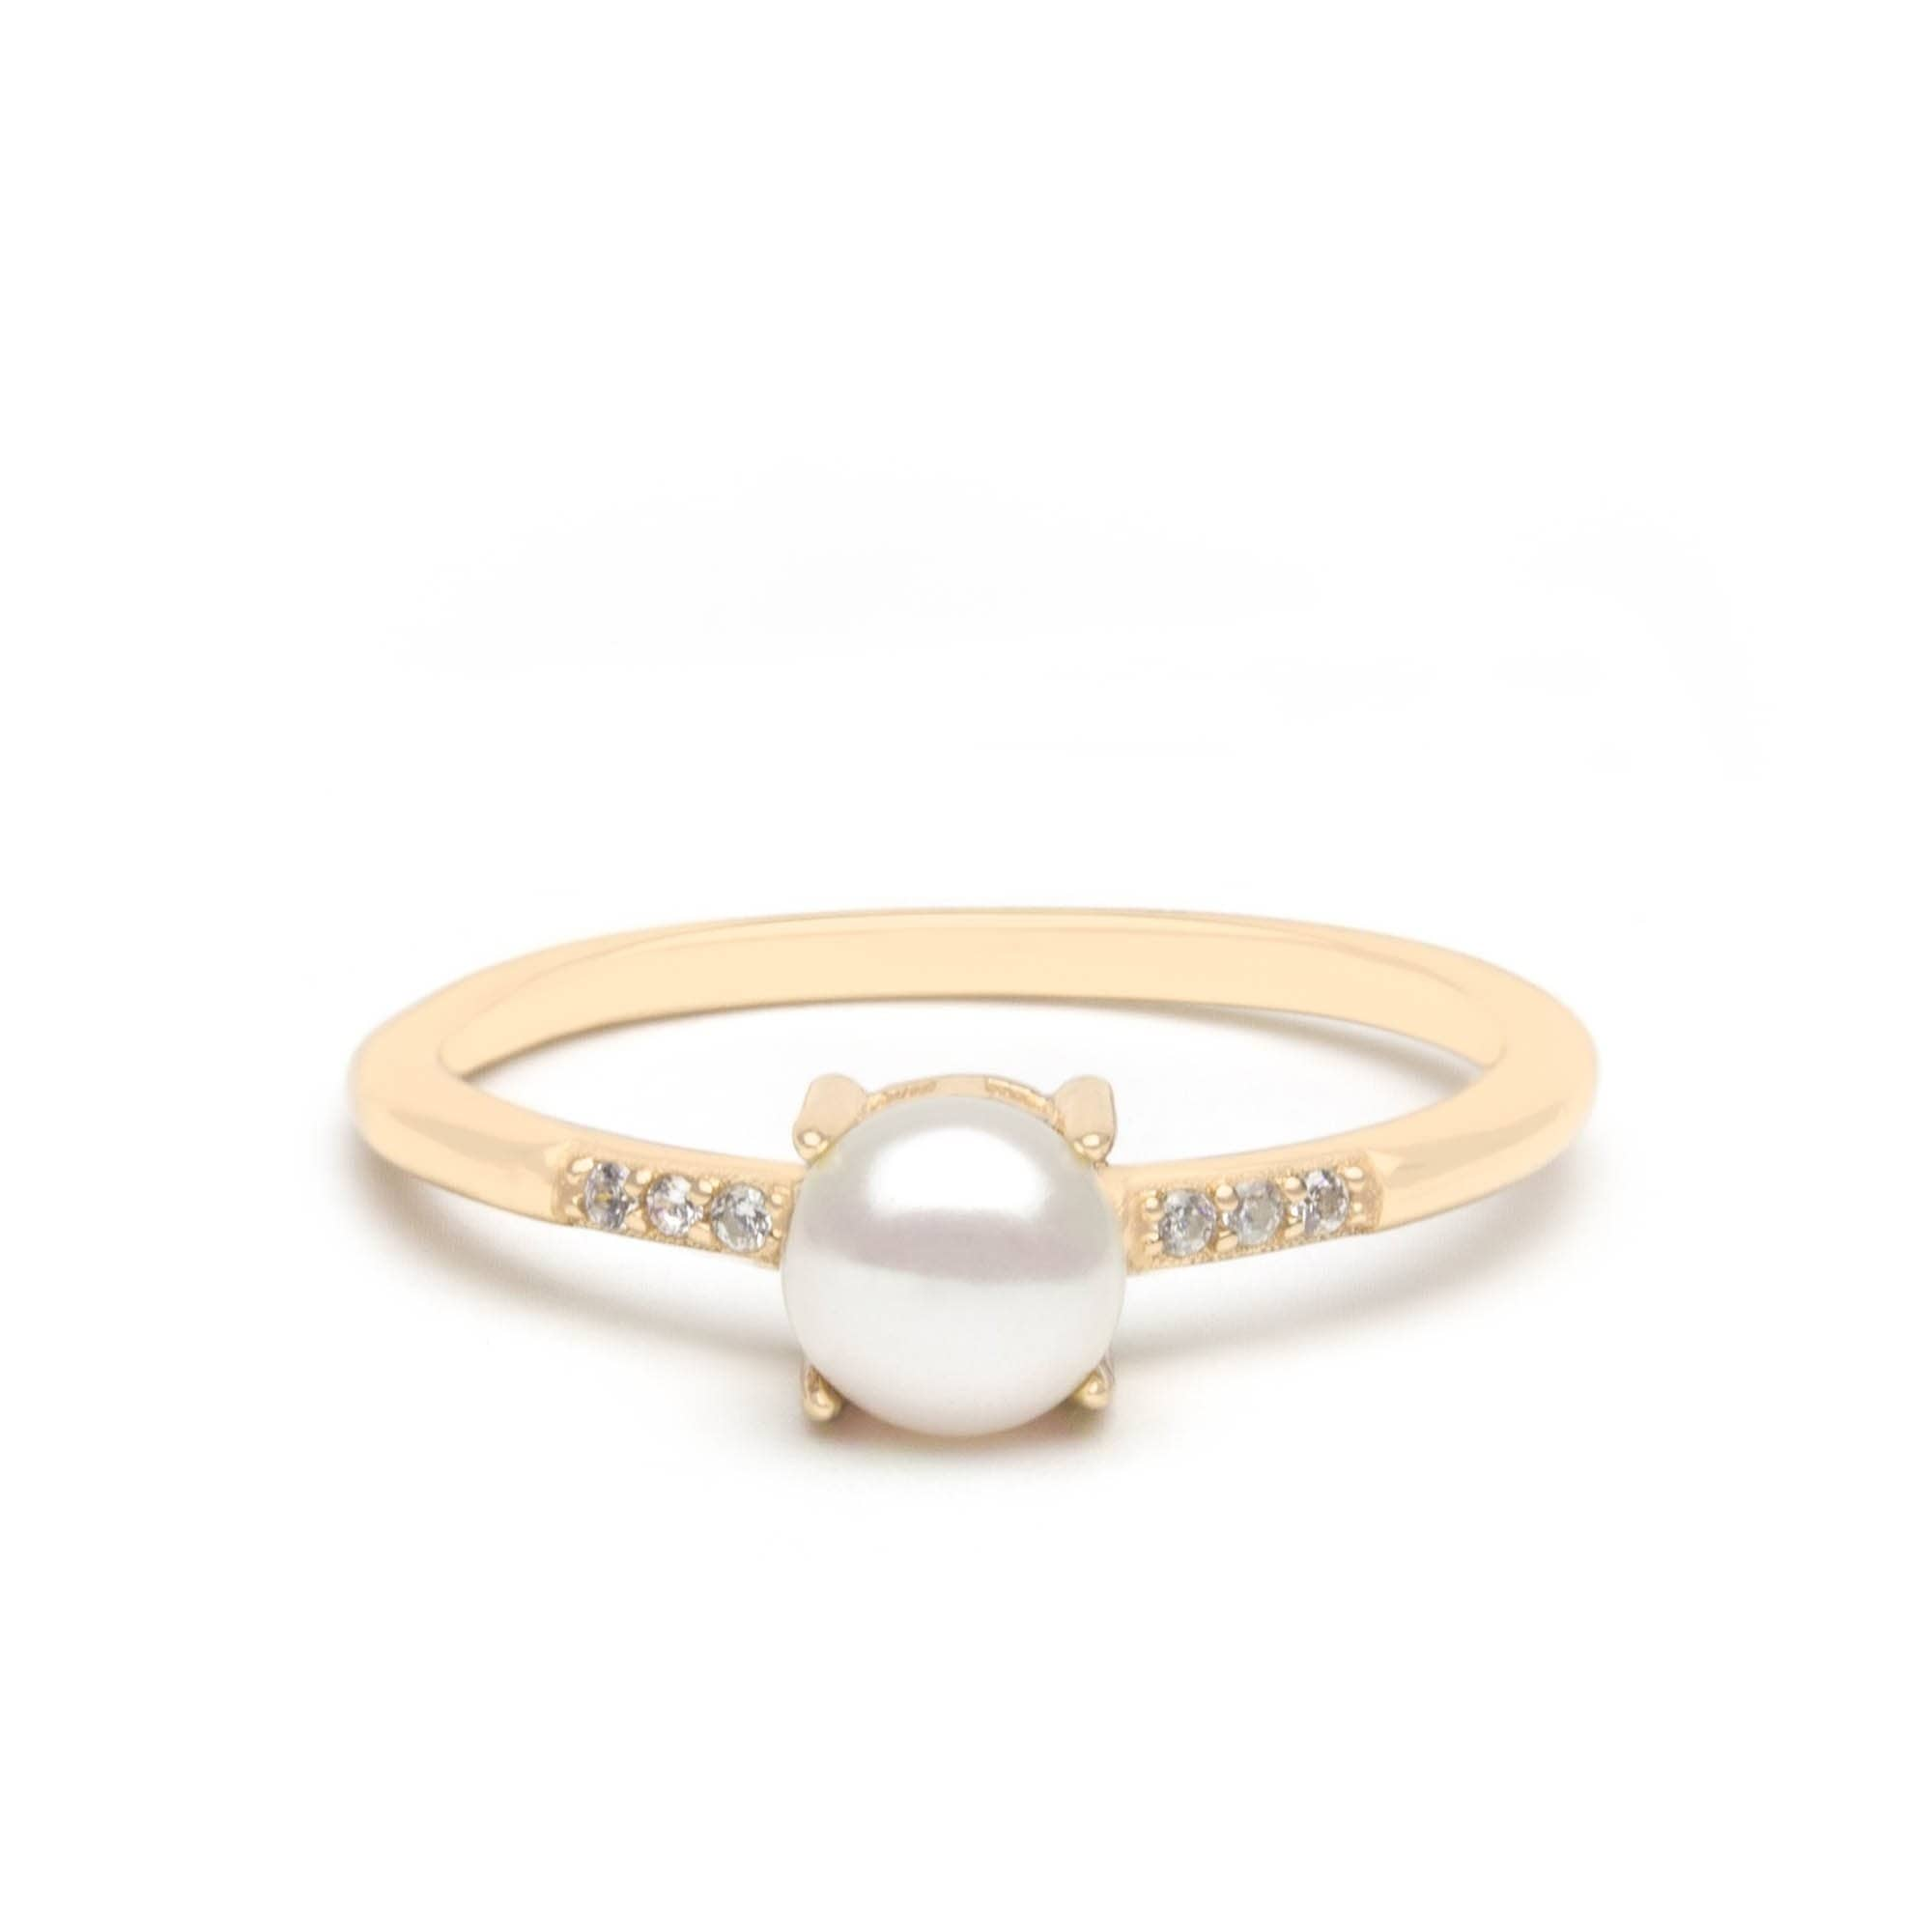 Jeanne's Jewels Rings Yellow Gold / 5 Emilia